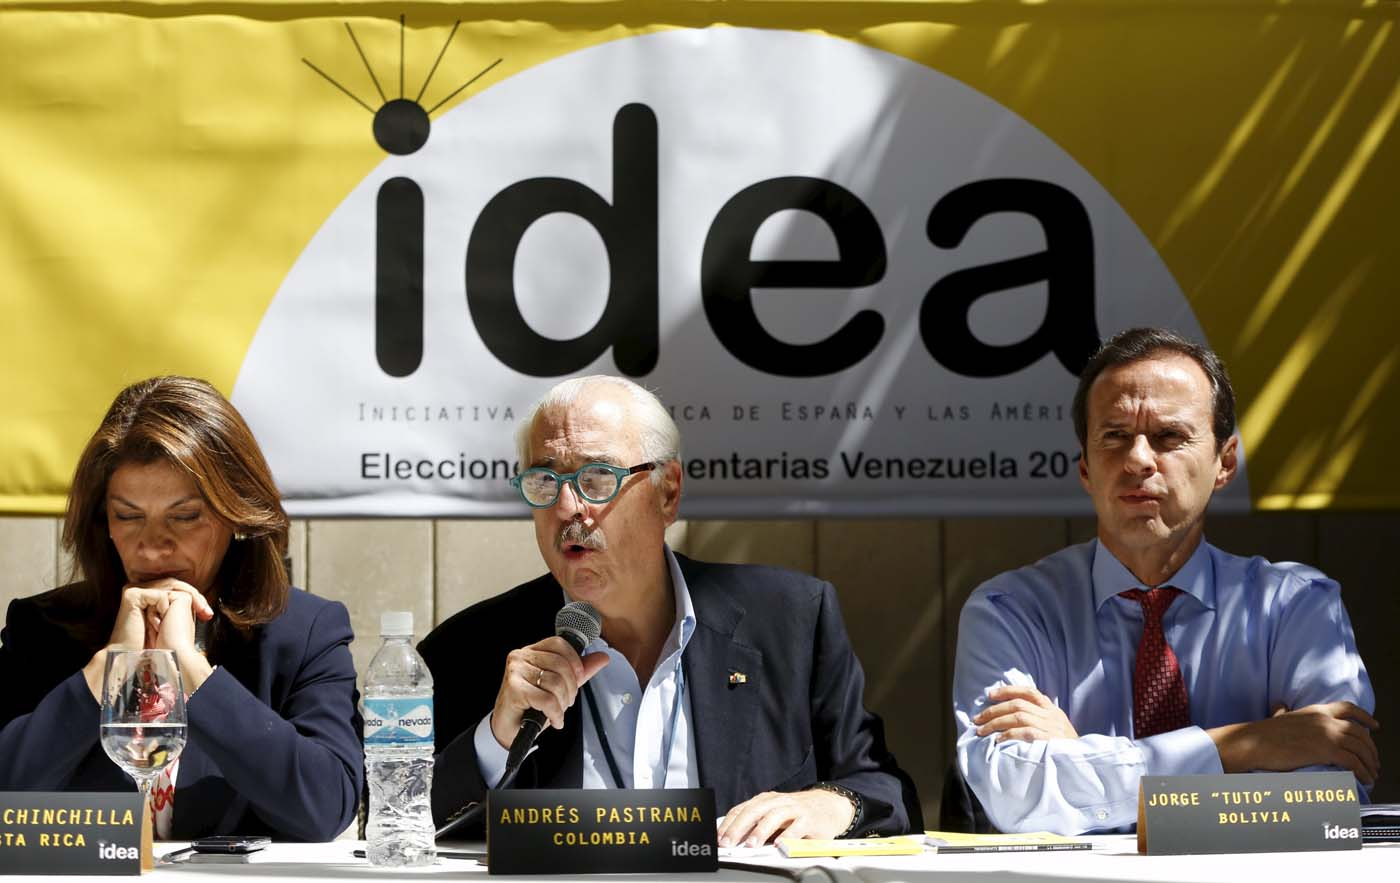 Colombia's former president Andres Pastrana (C) speaks next to Bolivia's former president Jorge Quiroga (R) and Costa Rica's former President Laura Chinchilla during a news conference in Caracas December 4, 2015. A group of former presidents, who are members of the Democratic Initiative of Spain and the Americas (IDEA), was invited by the Venezuelan coalition of opposition parties (MUD) as an accompaniment mission for the upcoming parliamentary elections. REUTERS/Carlos Garcia Rawlins